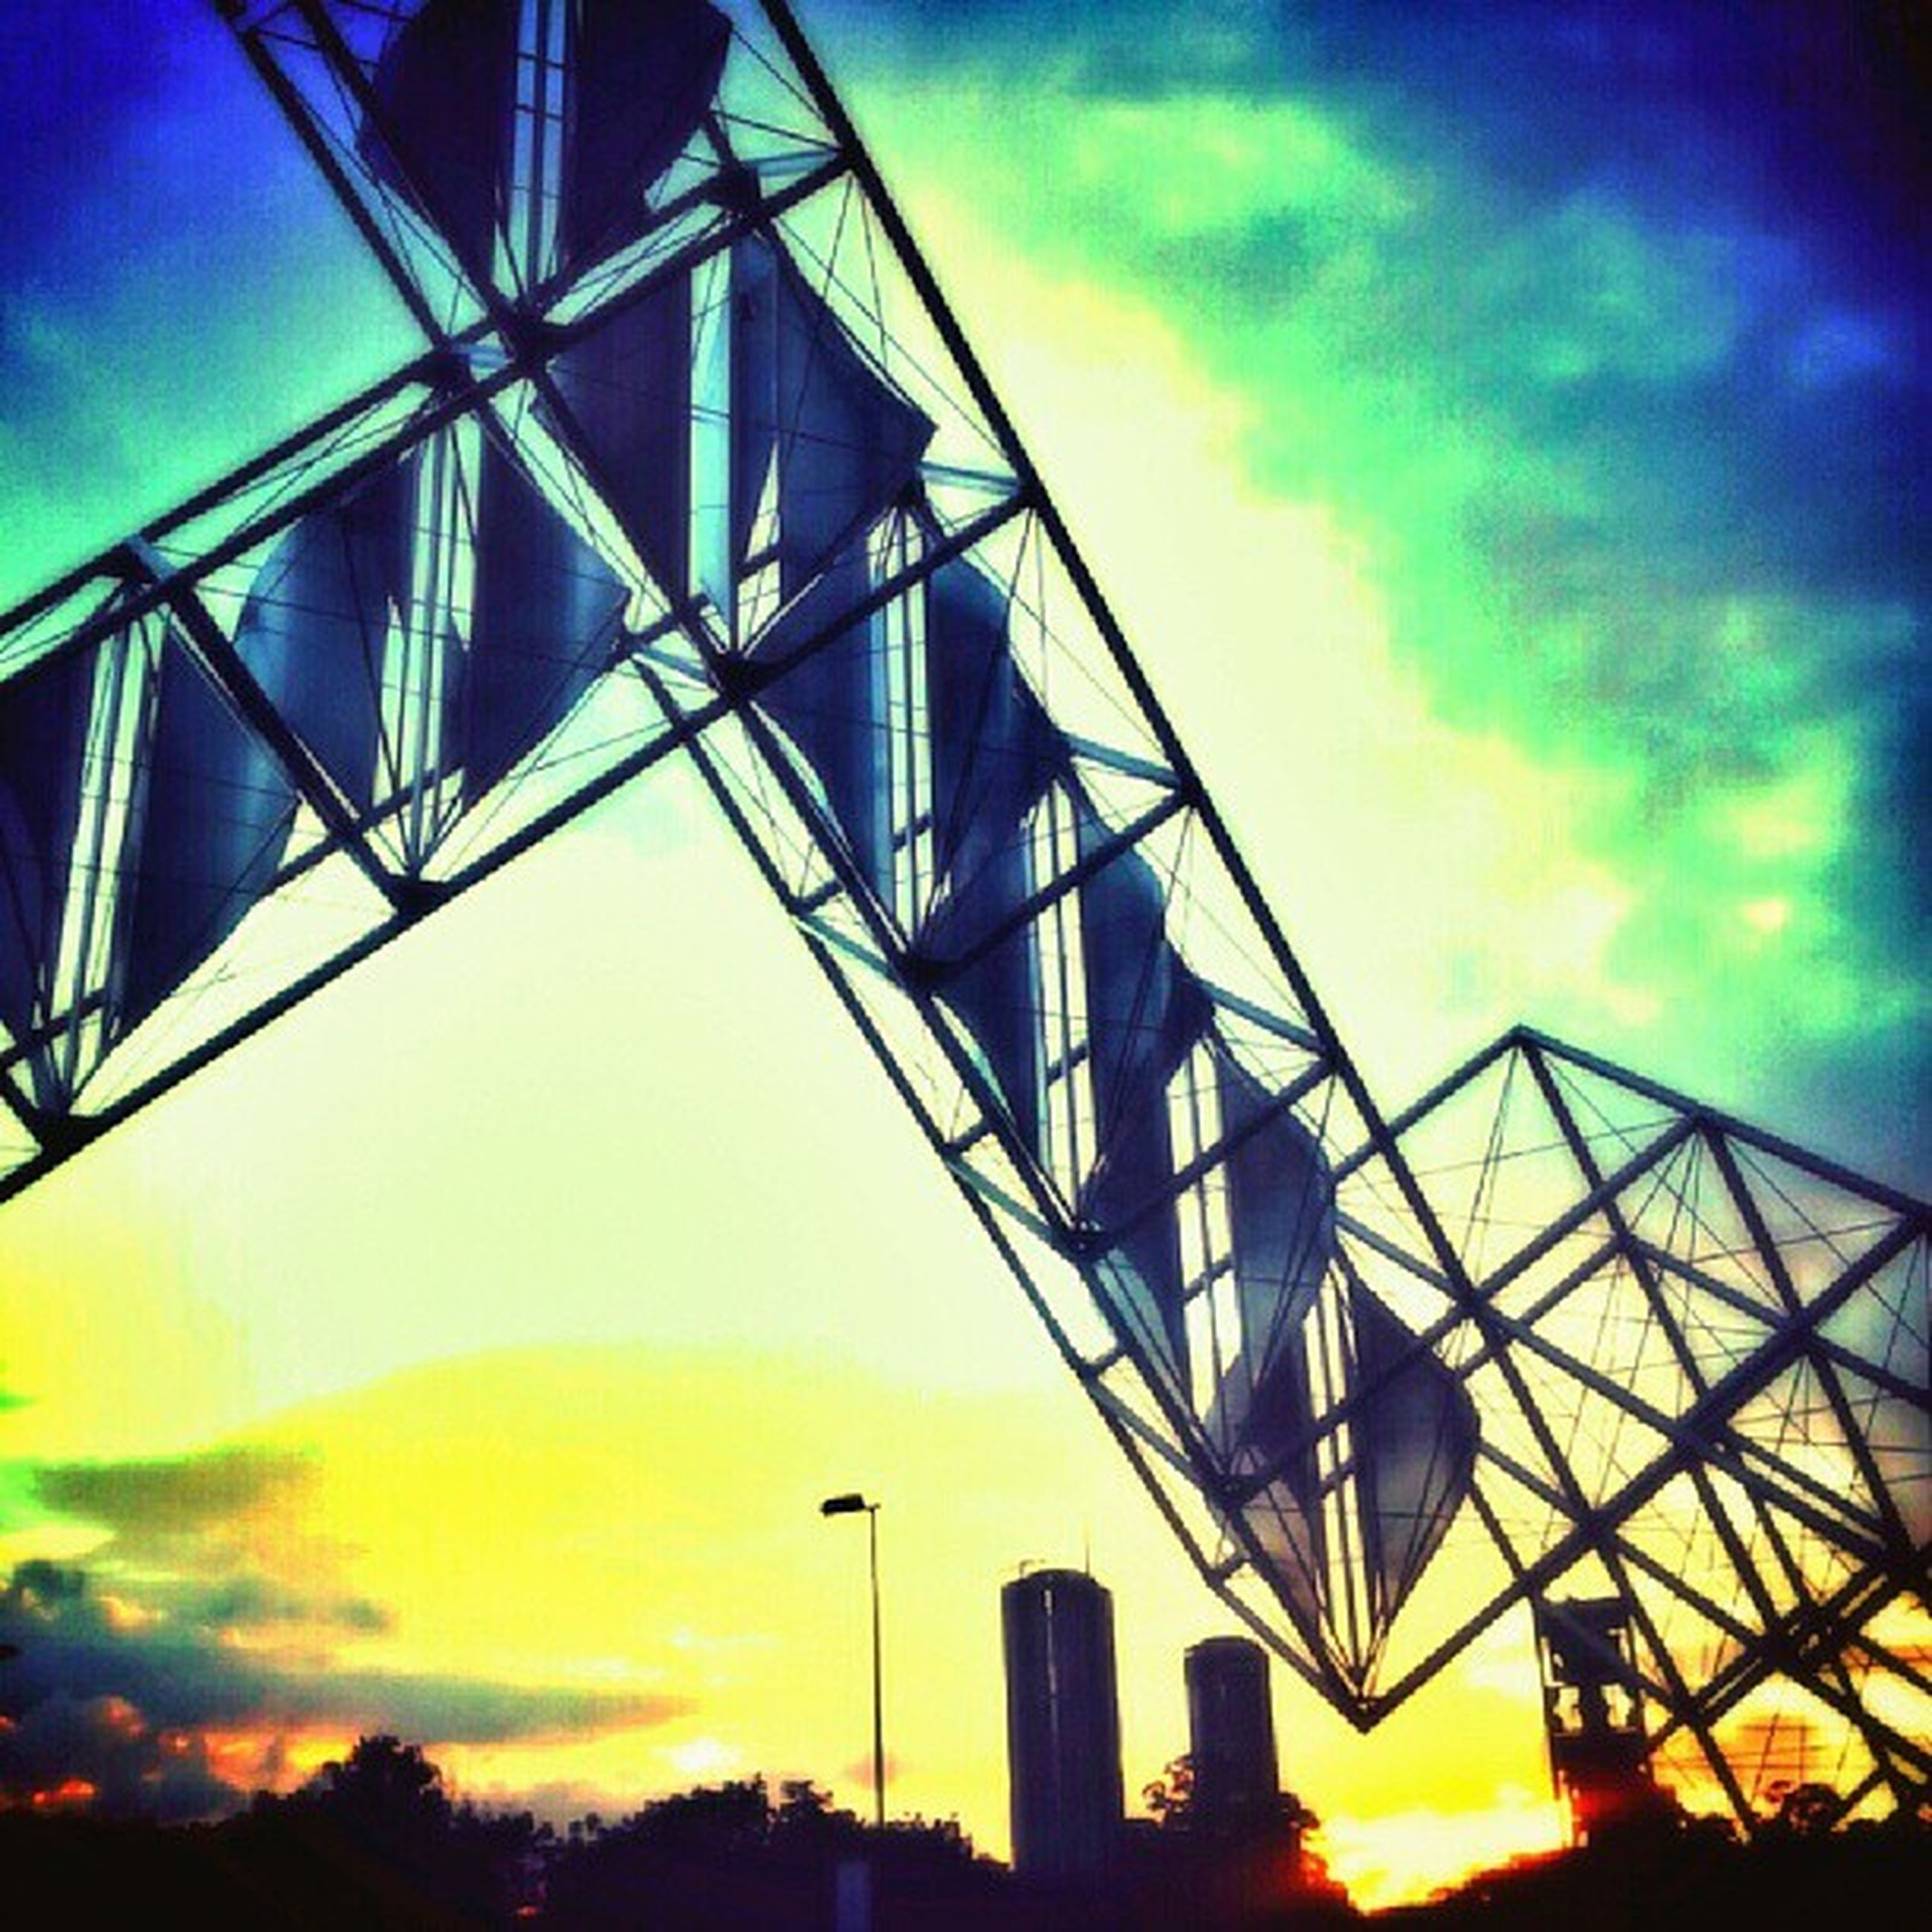 low angle view, sky, built structure, architecture, cloud - sky, sunset, silhouette, cloud, metal, no people, outdoors, orange color, cloudy, dusk, connection, modern, yellow, arts culture and entertainment, engineering, sunlight